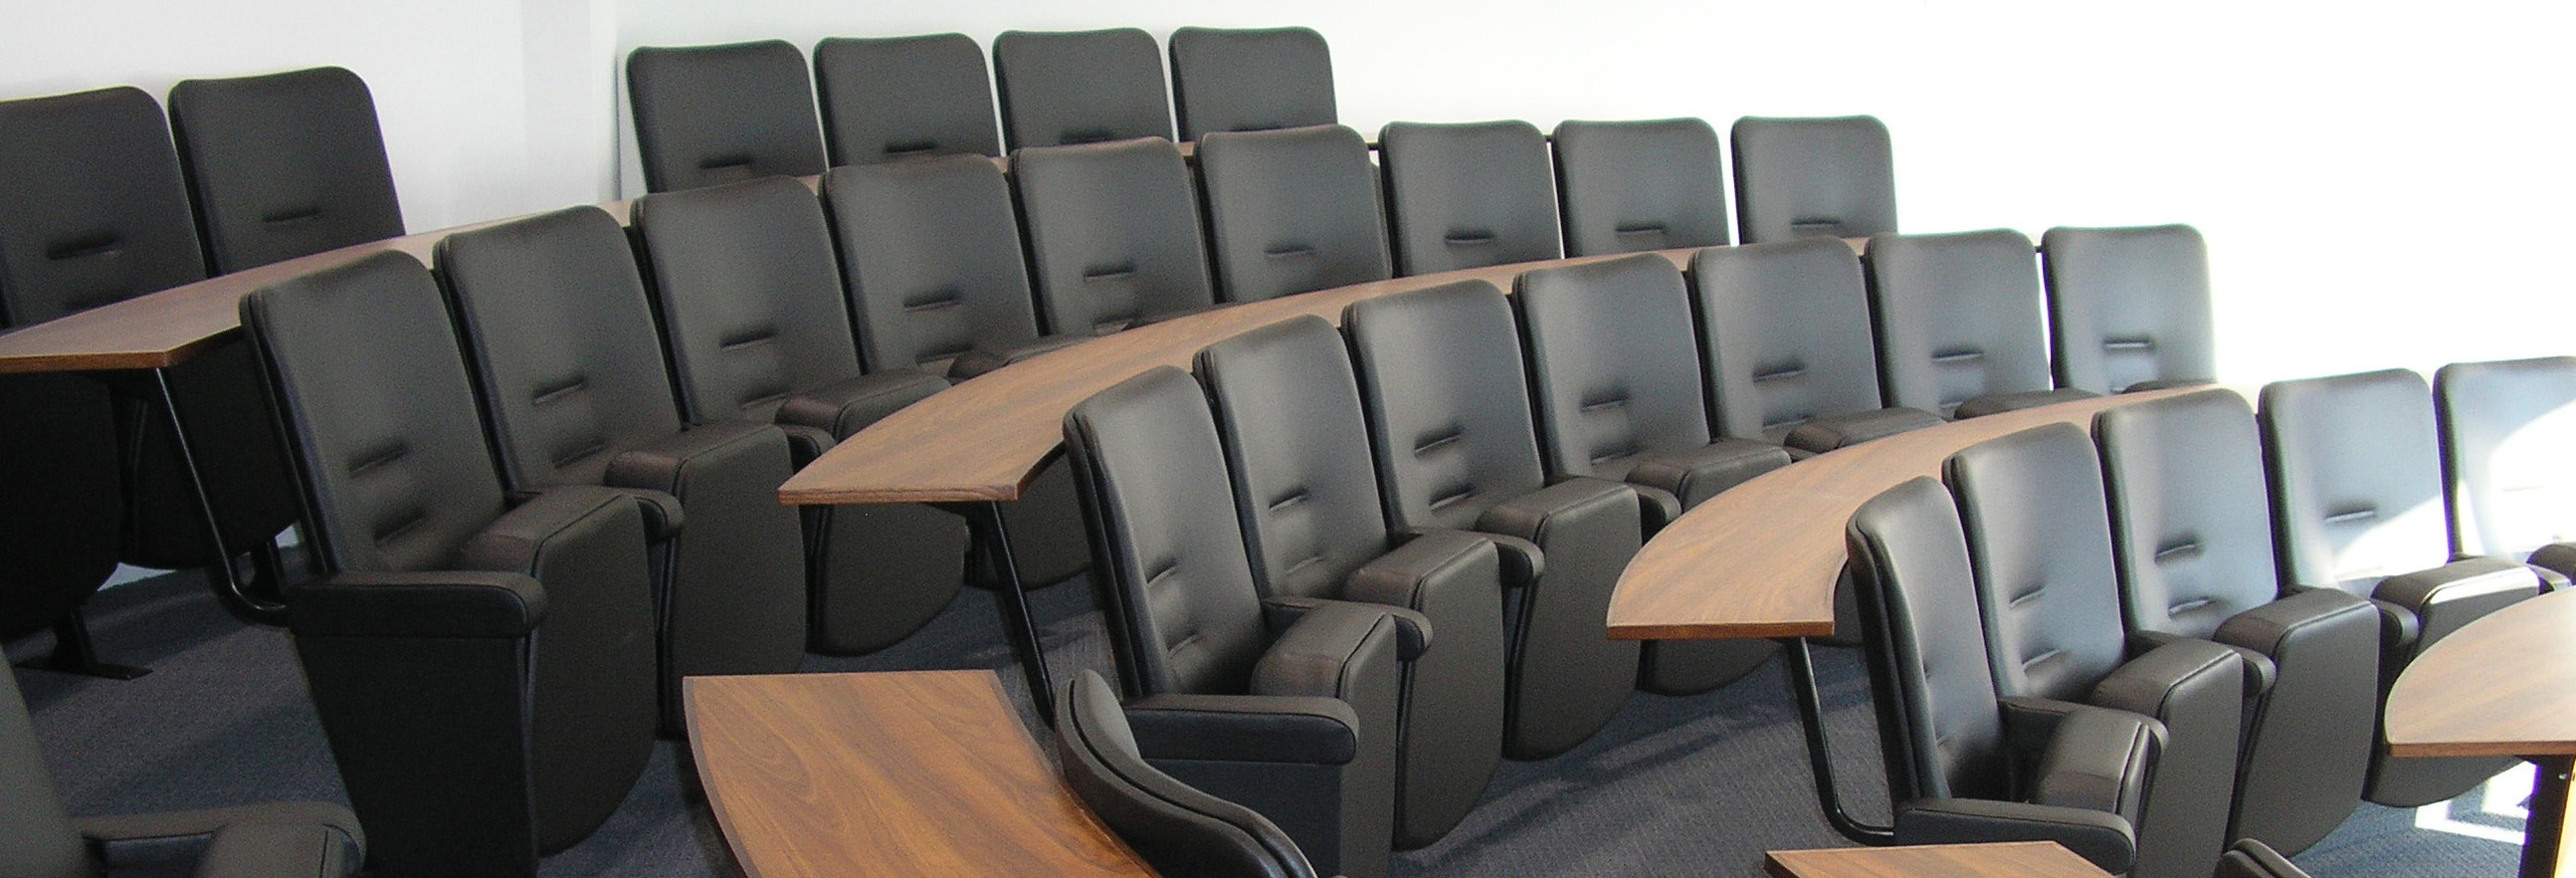 Evertaut Aspire lecture theatre and conference seating upholstered in black vinyl with oak effect desks